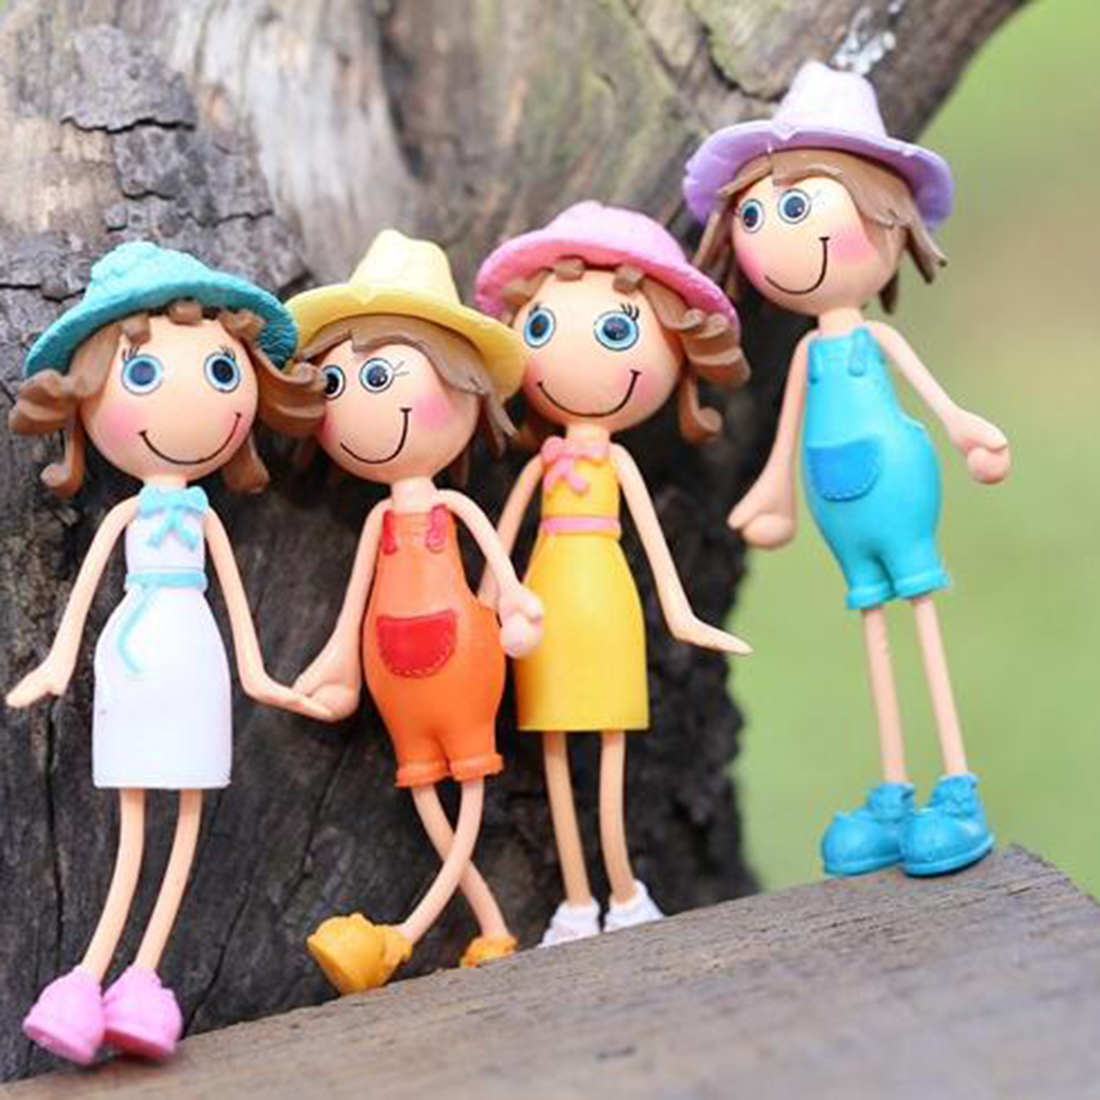 2016 Super Hot Lovely Small Summer Sunshine Girl Doll Cartoon Figurines Gardening Ornament Home Decoration Accessories